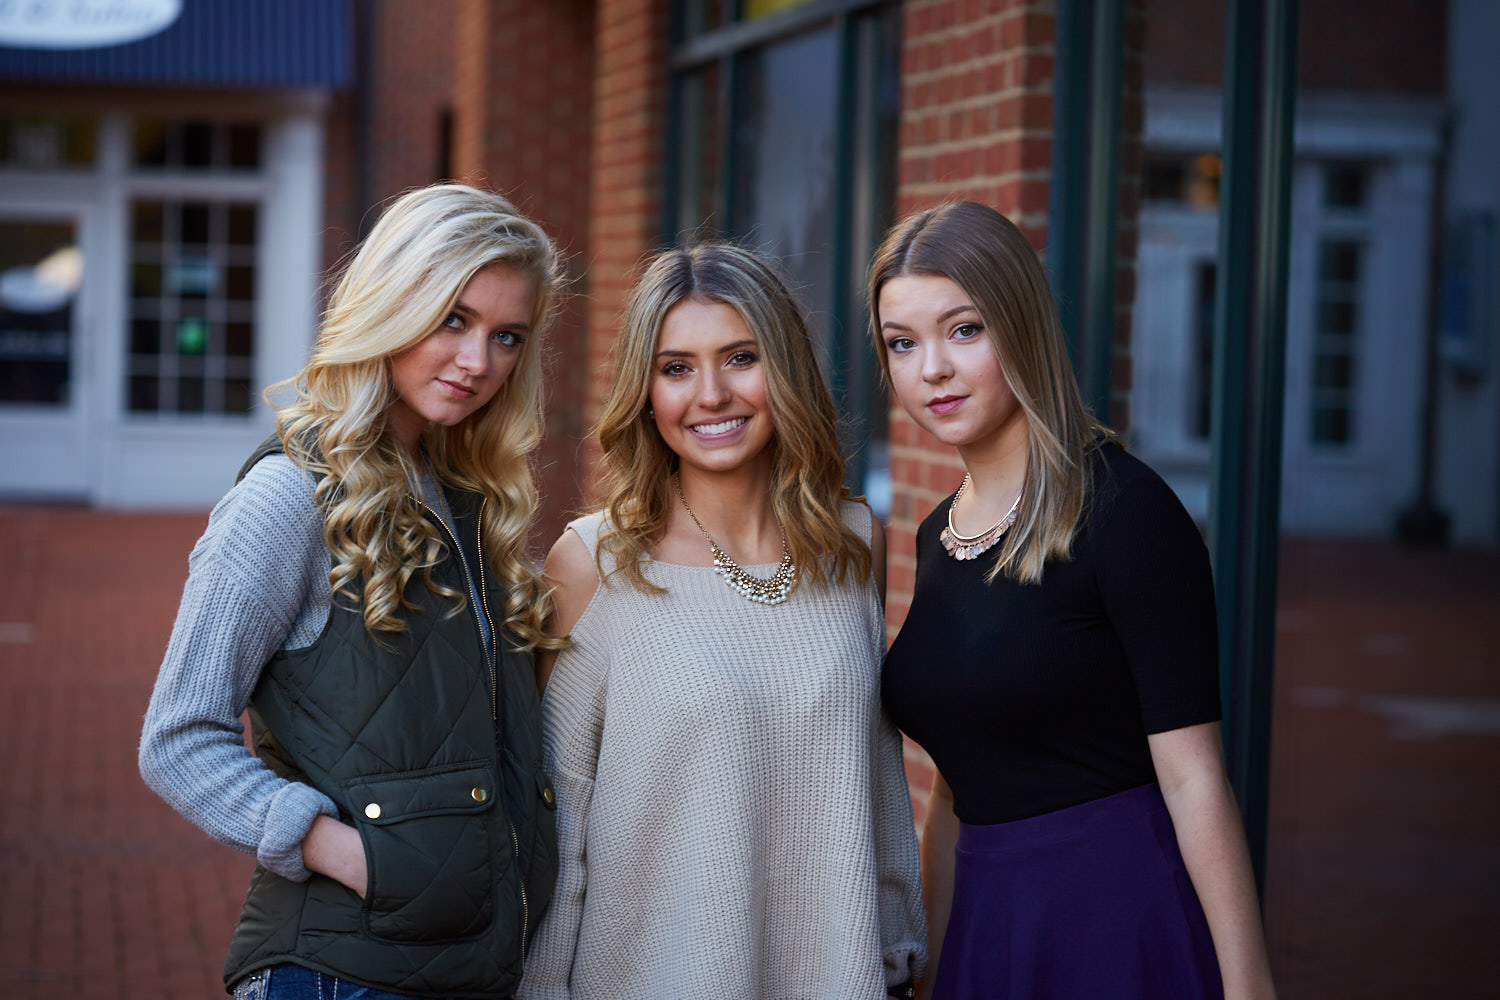 Three Senior girls pose in courtyard